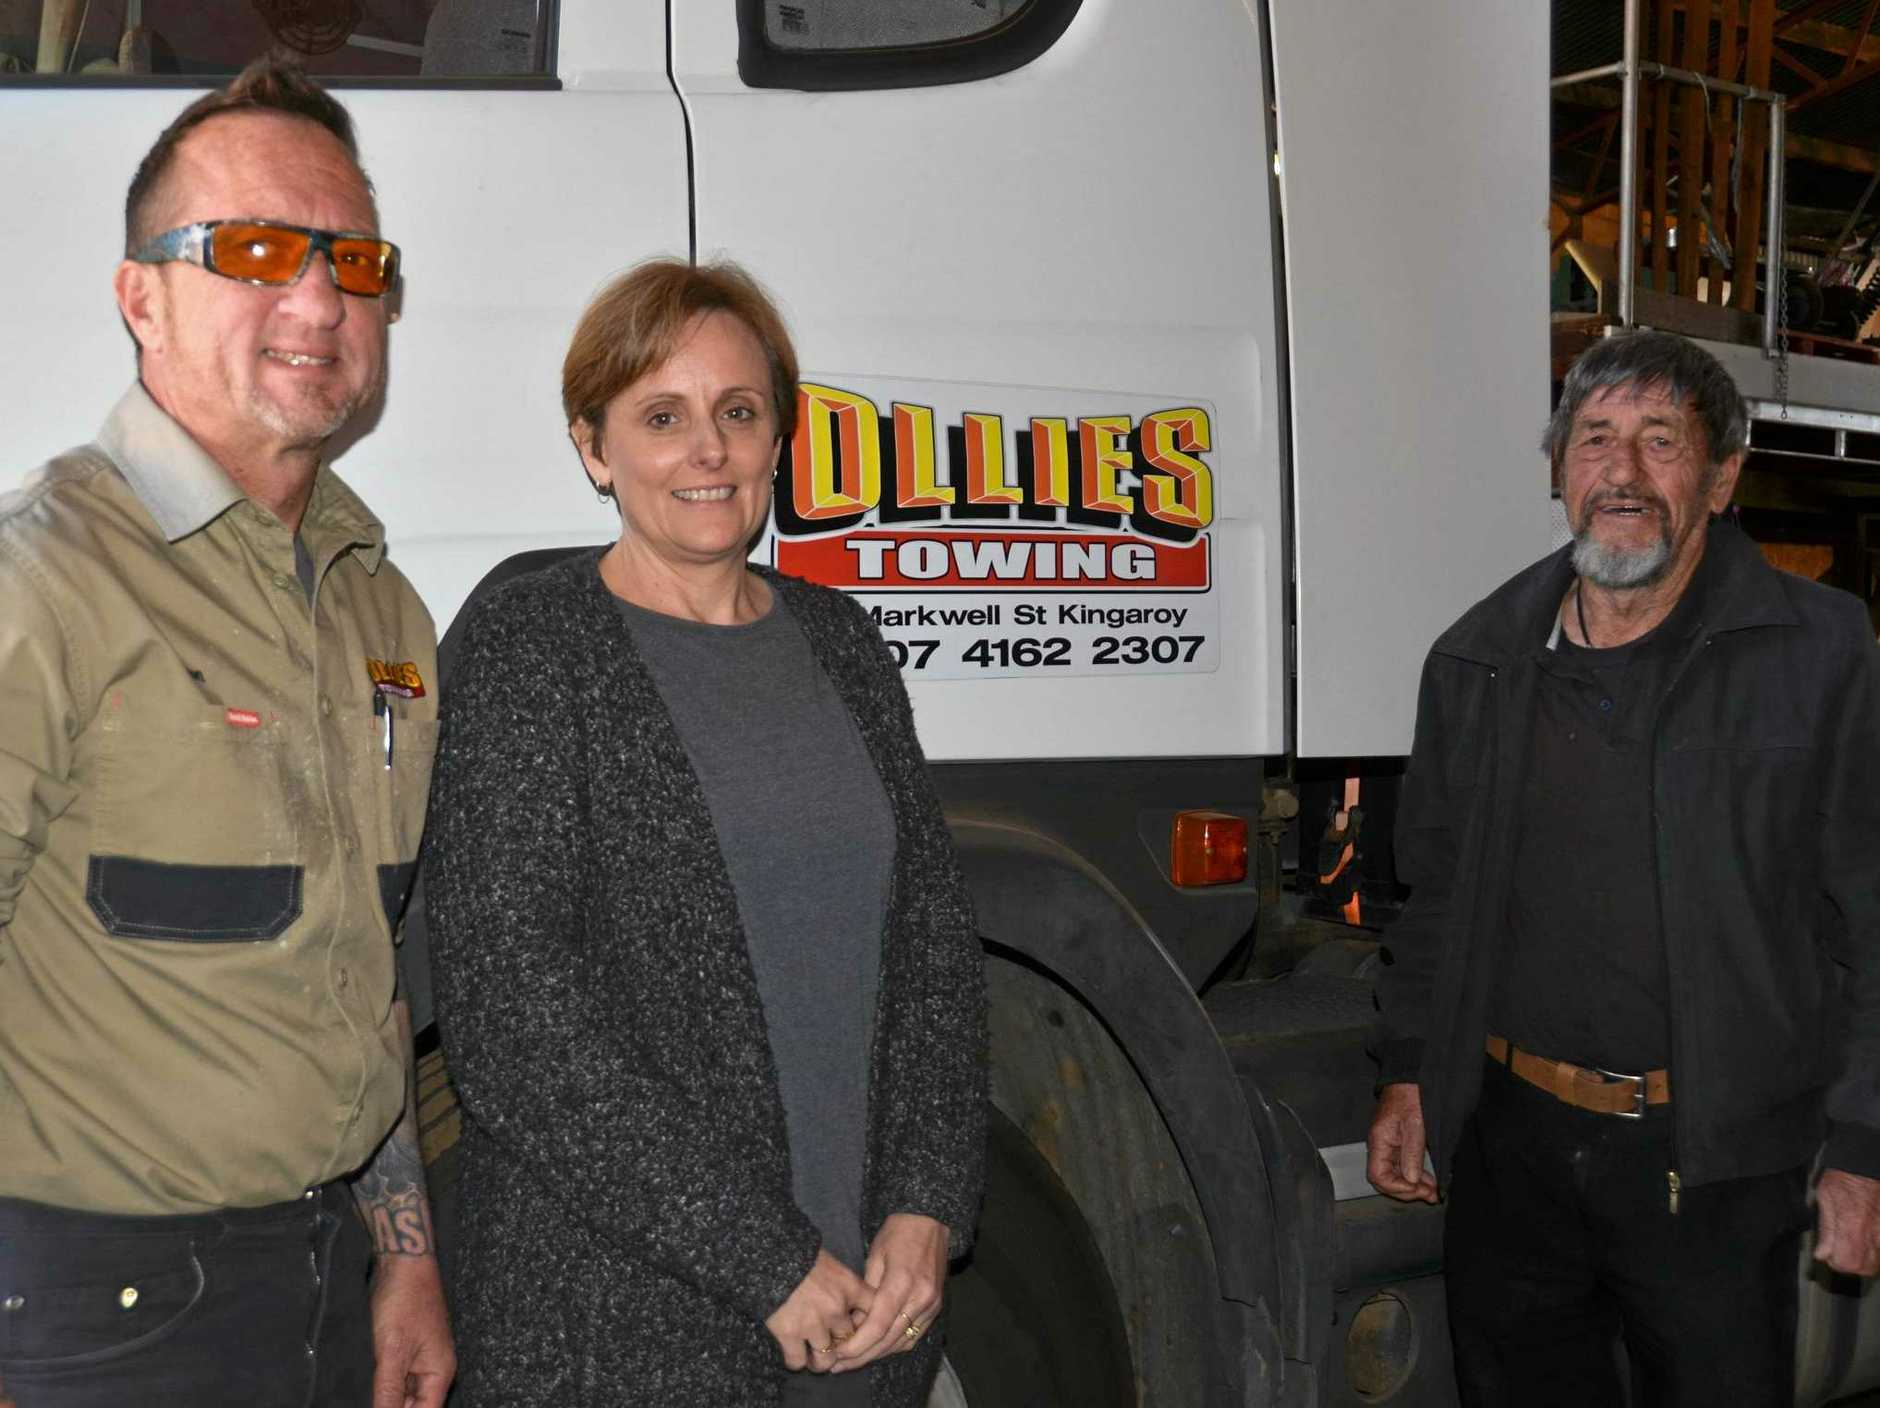 The team at Ollies Towing & Shipping Container Sales, Ron Oliver Jnr, Tina Oliver and Ron Oliver Snr, make sure to do their best for customers.